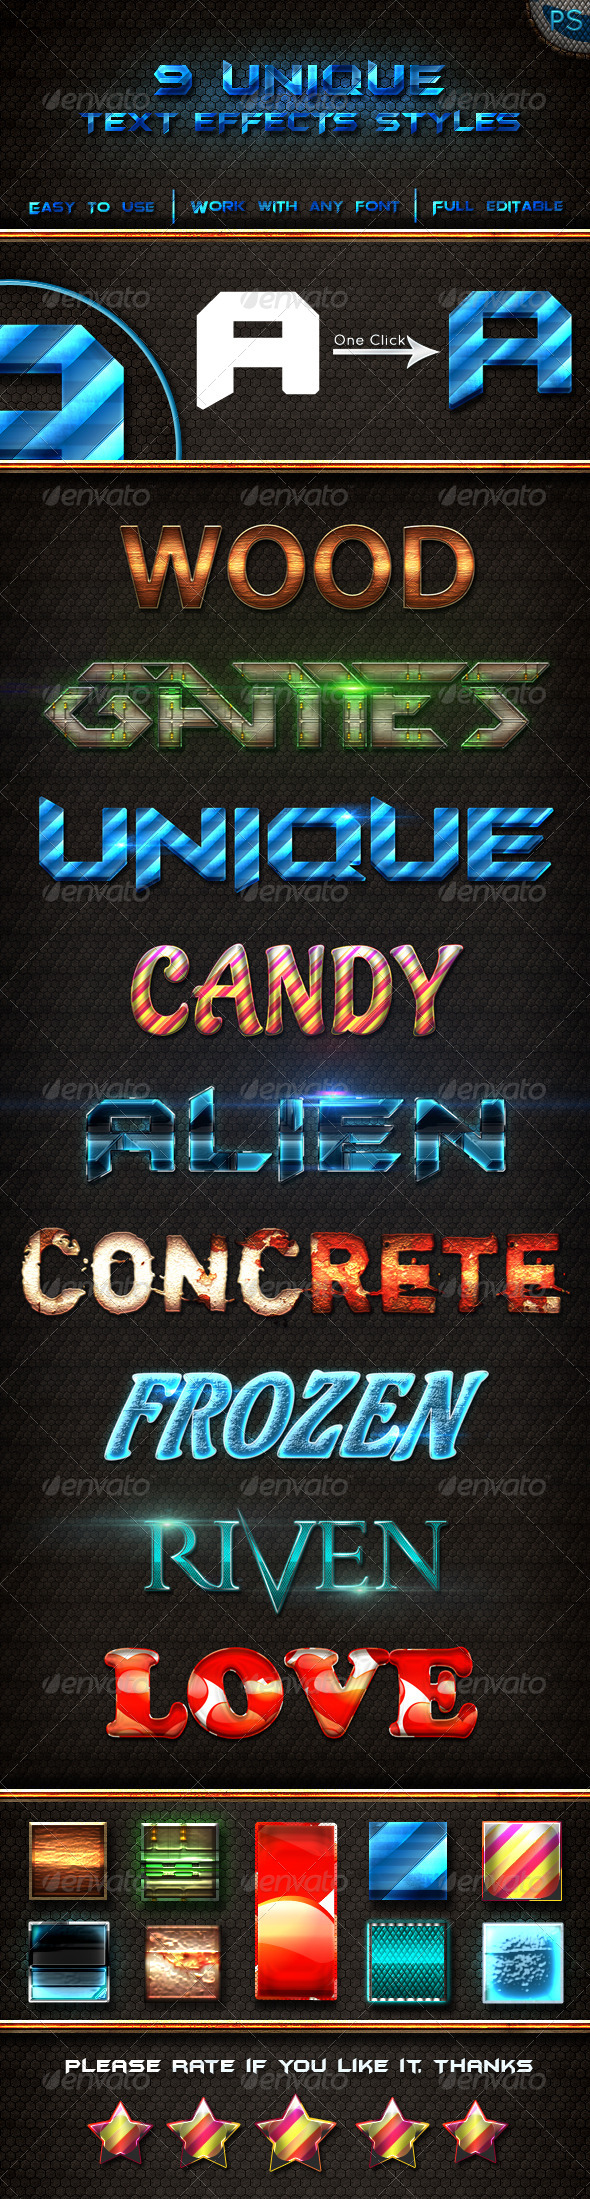 GraphicRiver 9 Unique Text Effects Styles 6514169